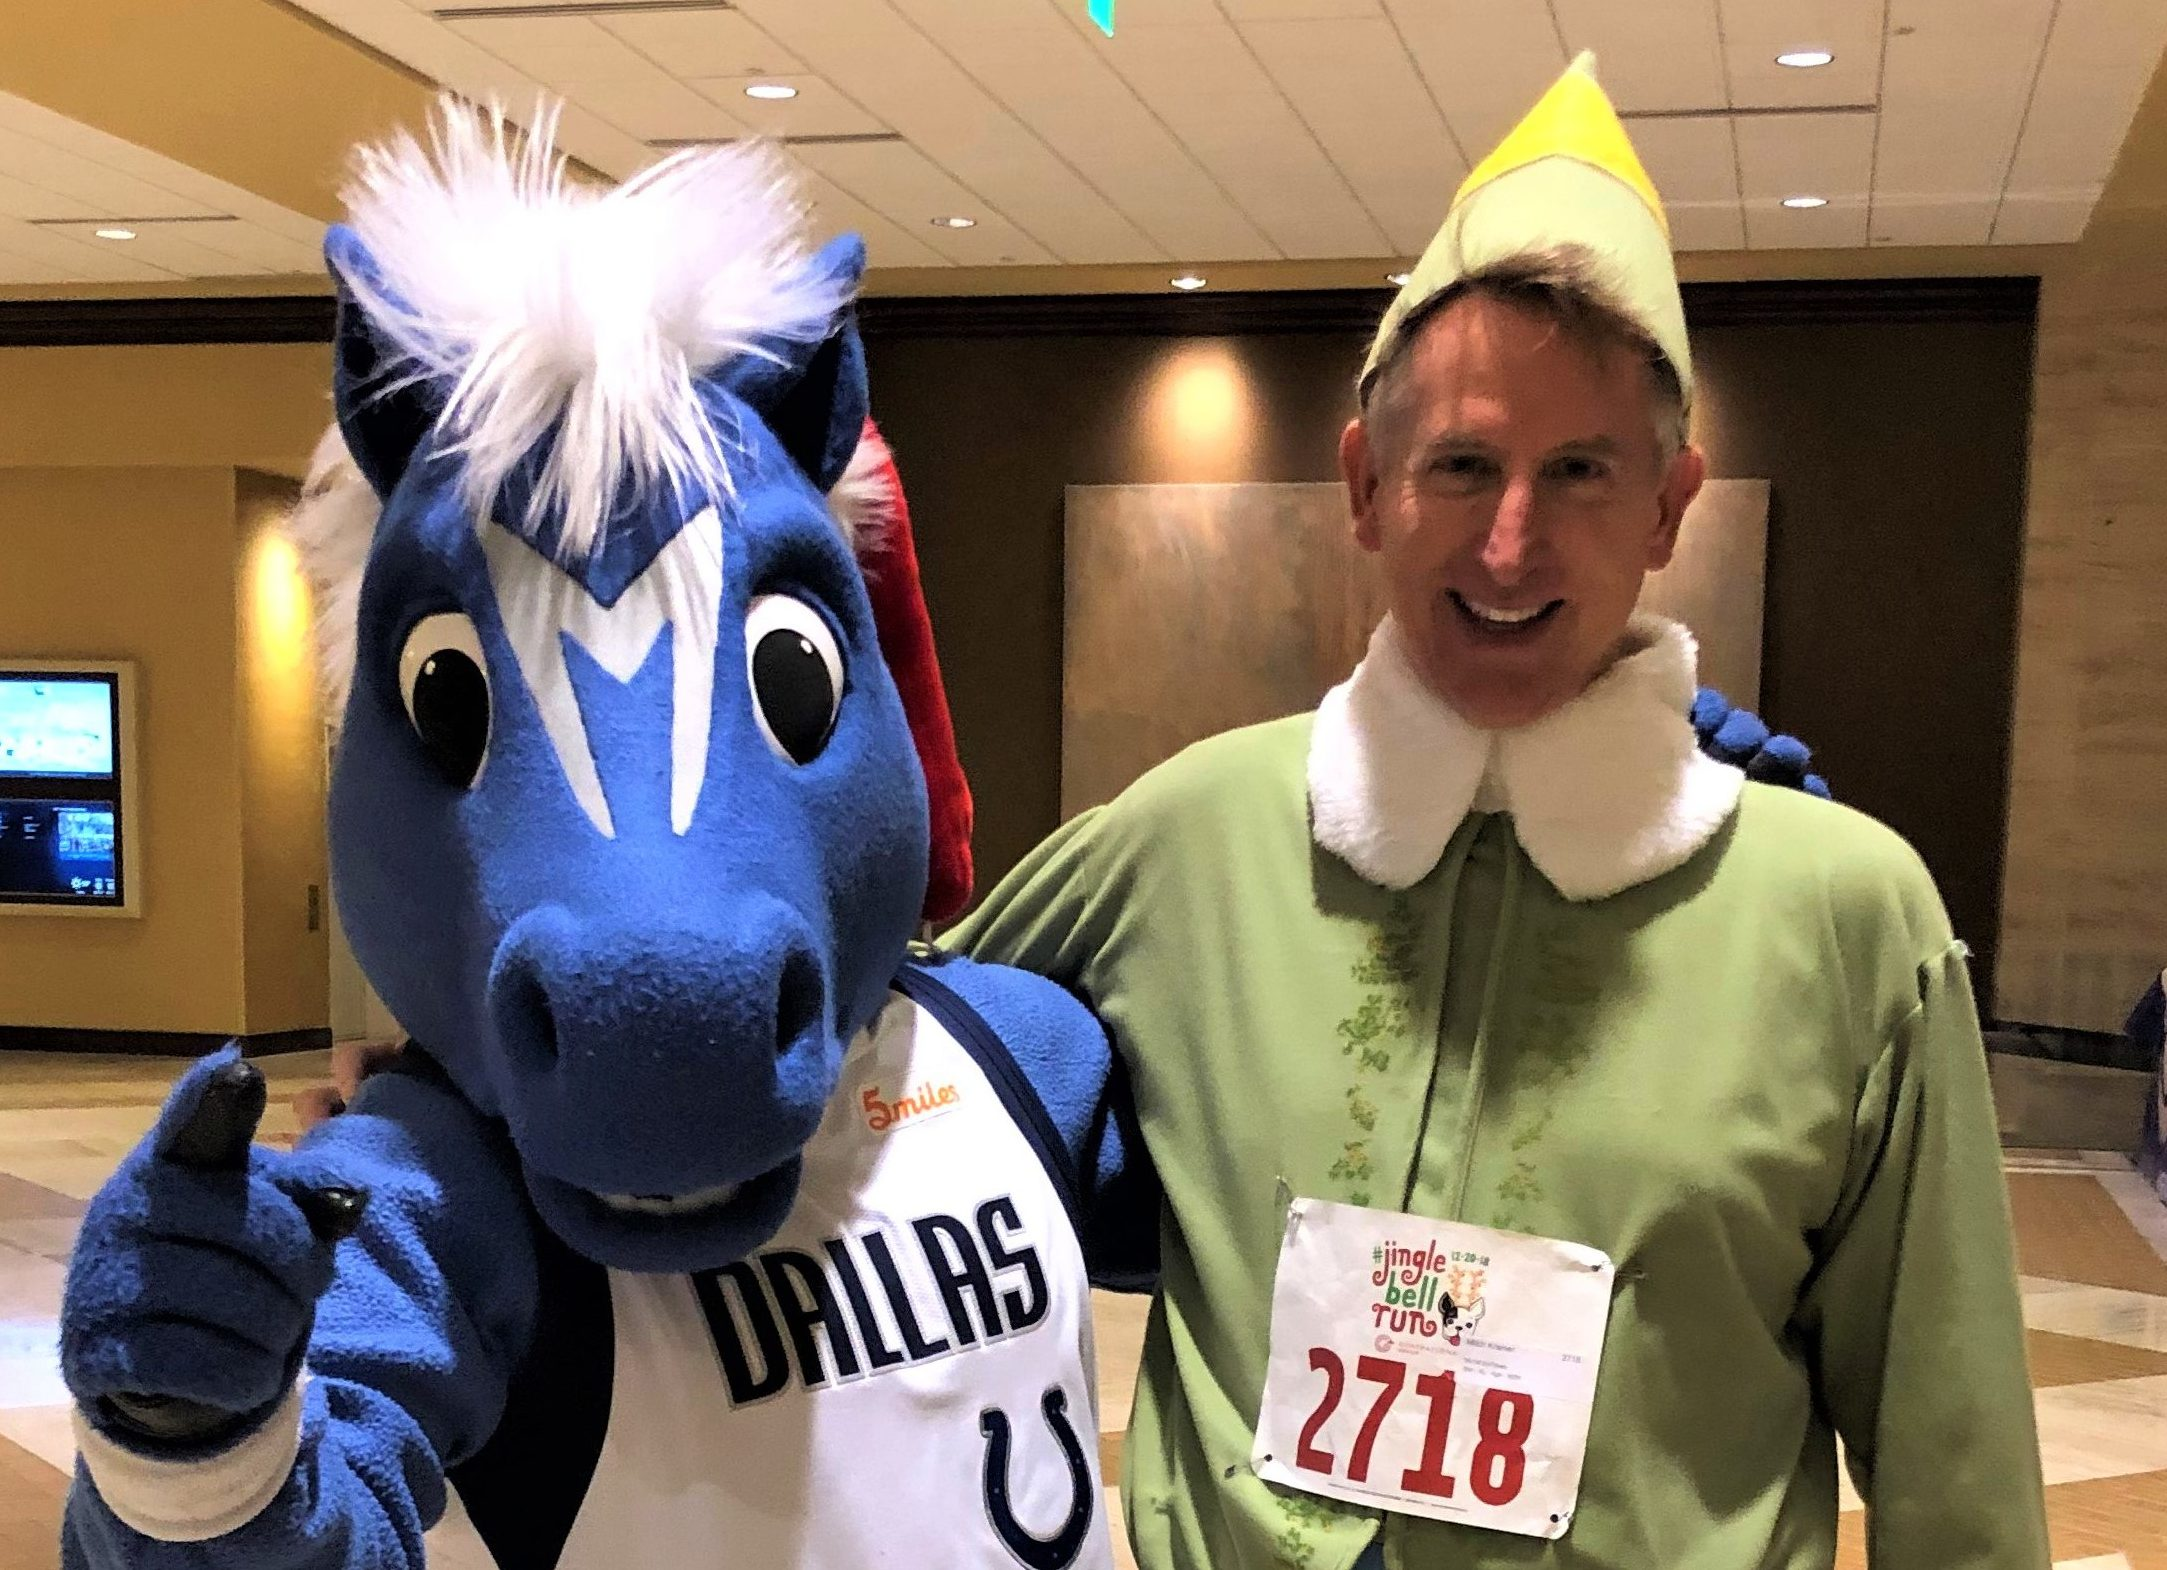 Fluent Financial Sponsors 2018 Generational Group Jingle Bell Run!